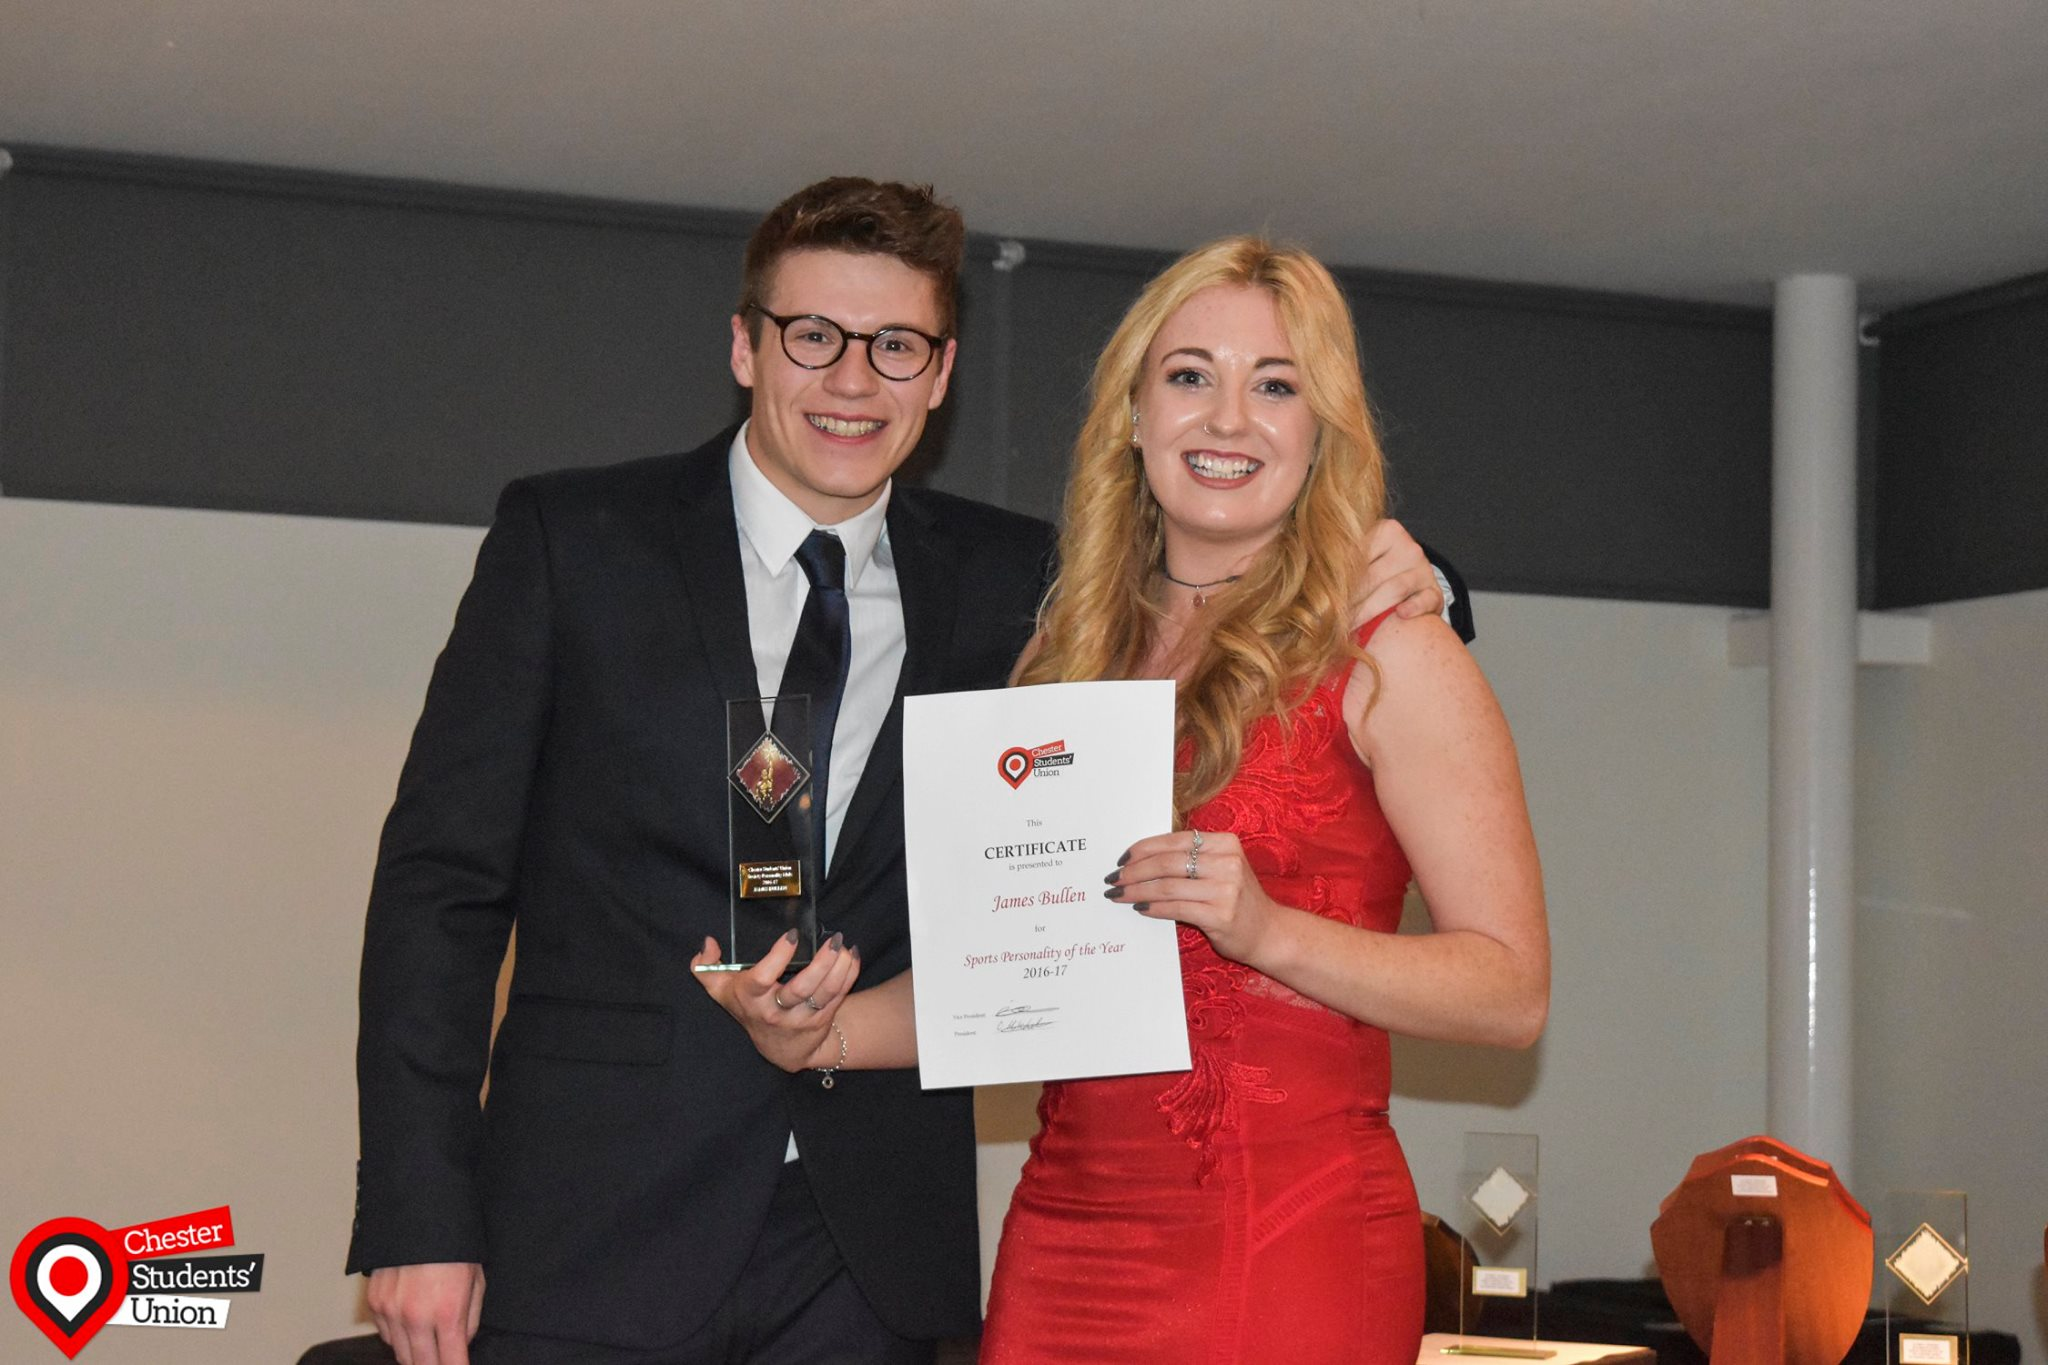 Student Credits University Experience For Securing His